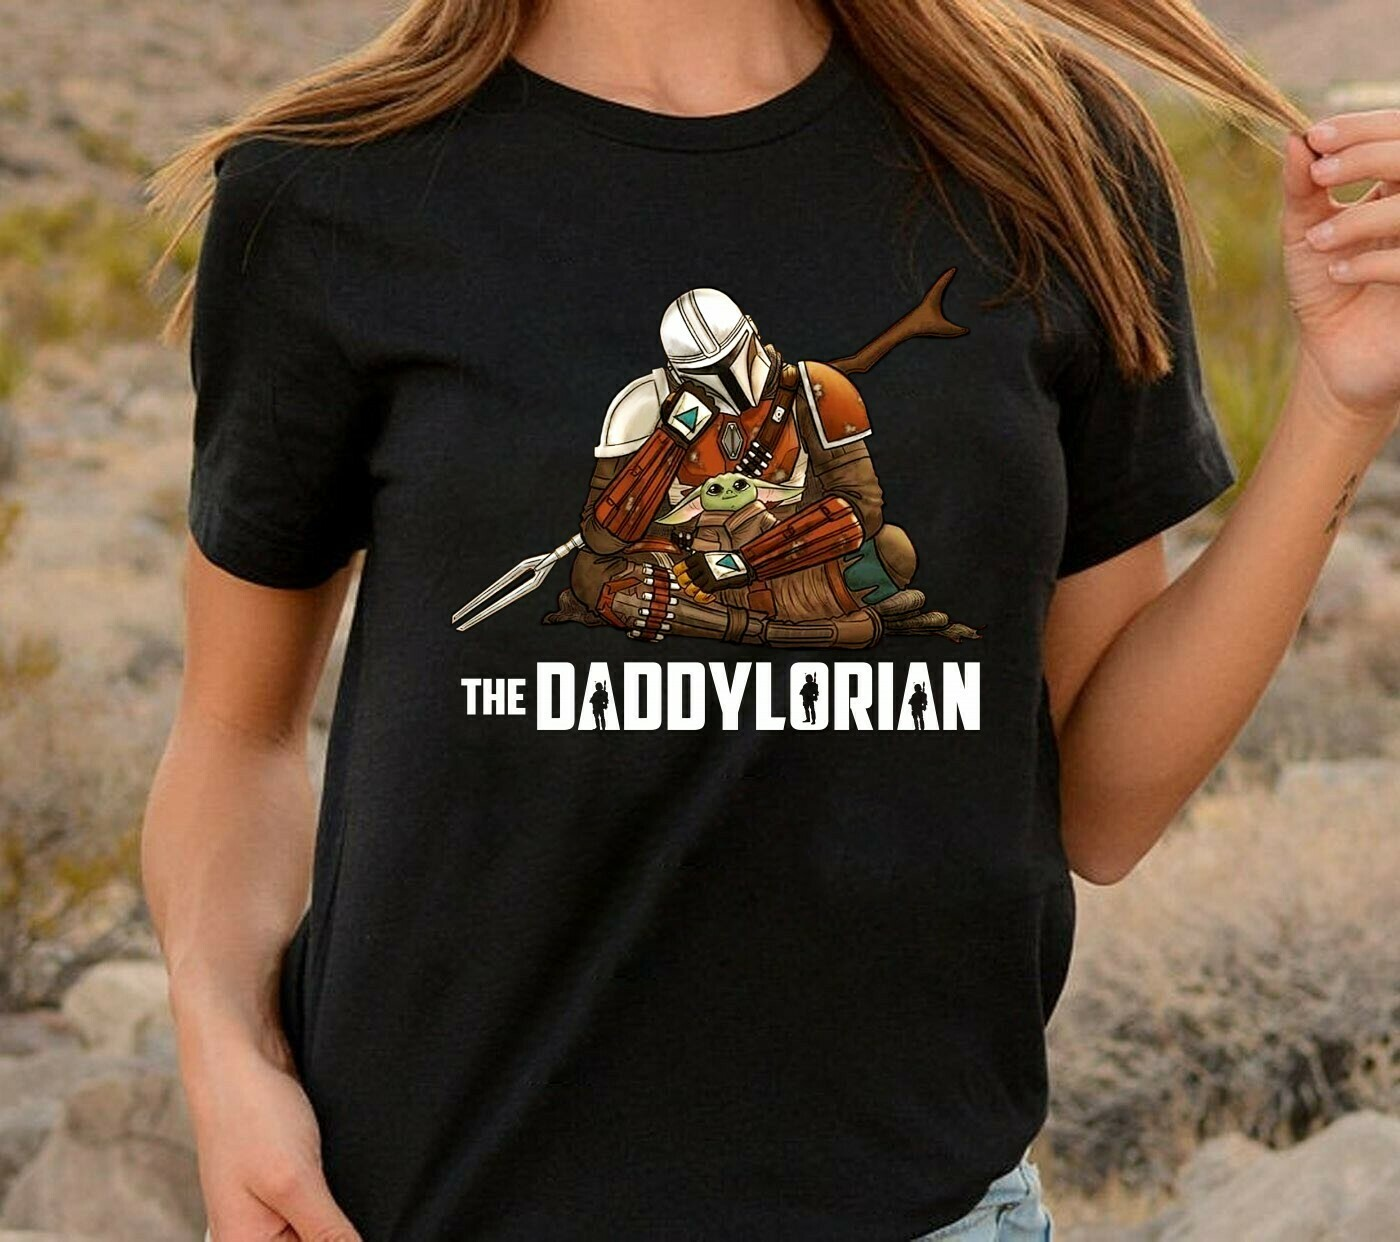 The Daddylorian Daddy Baby Yoda Mandalorian,Star Wars Inspired Darth Vader Galaxy's Best Dad T-Shirt Long Sleeve Sweatshirt Hoodie Jolly Family Gifts